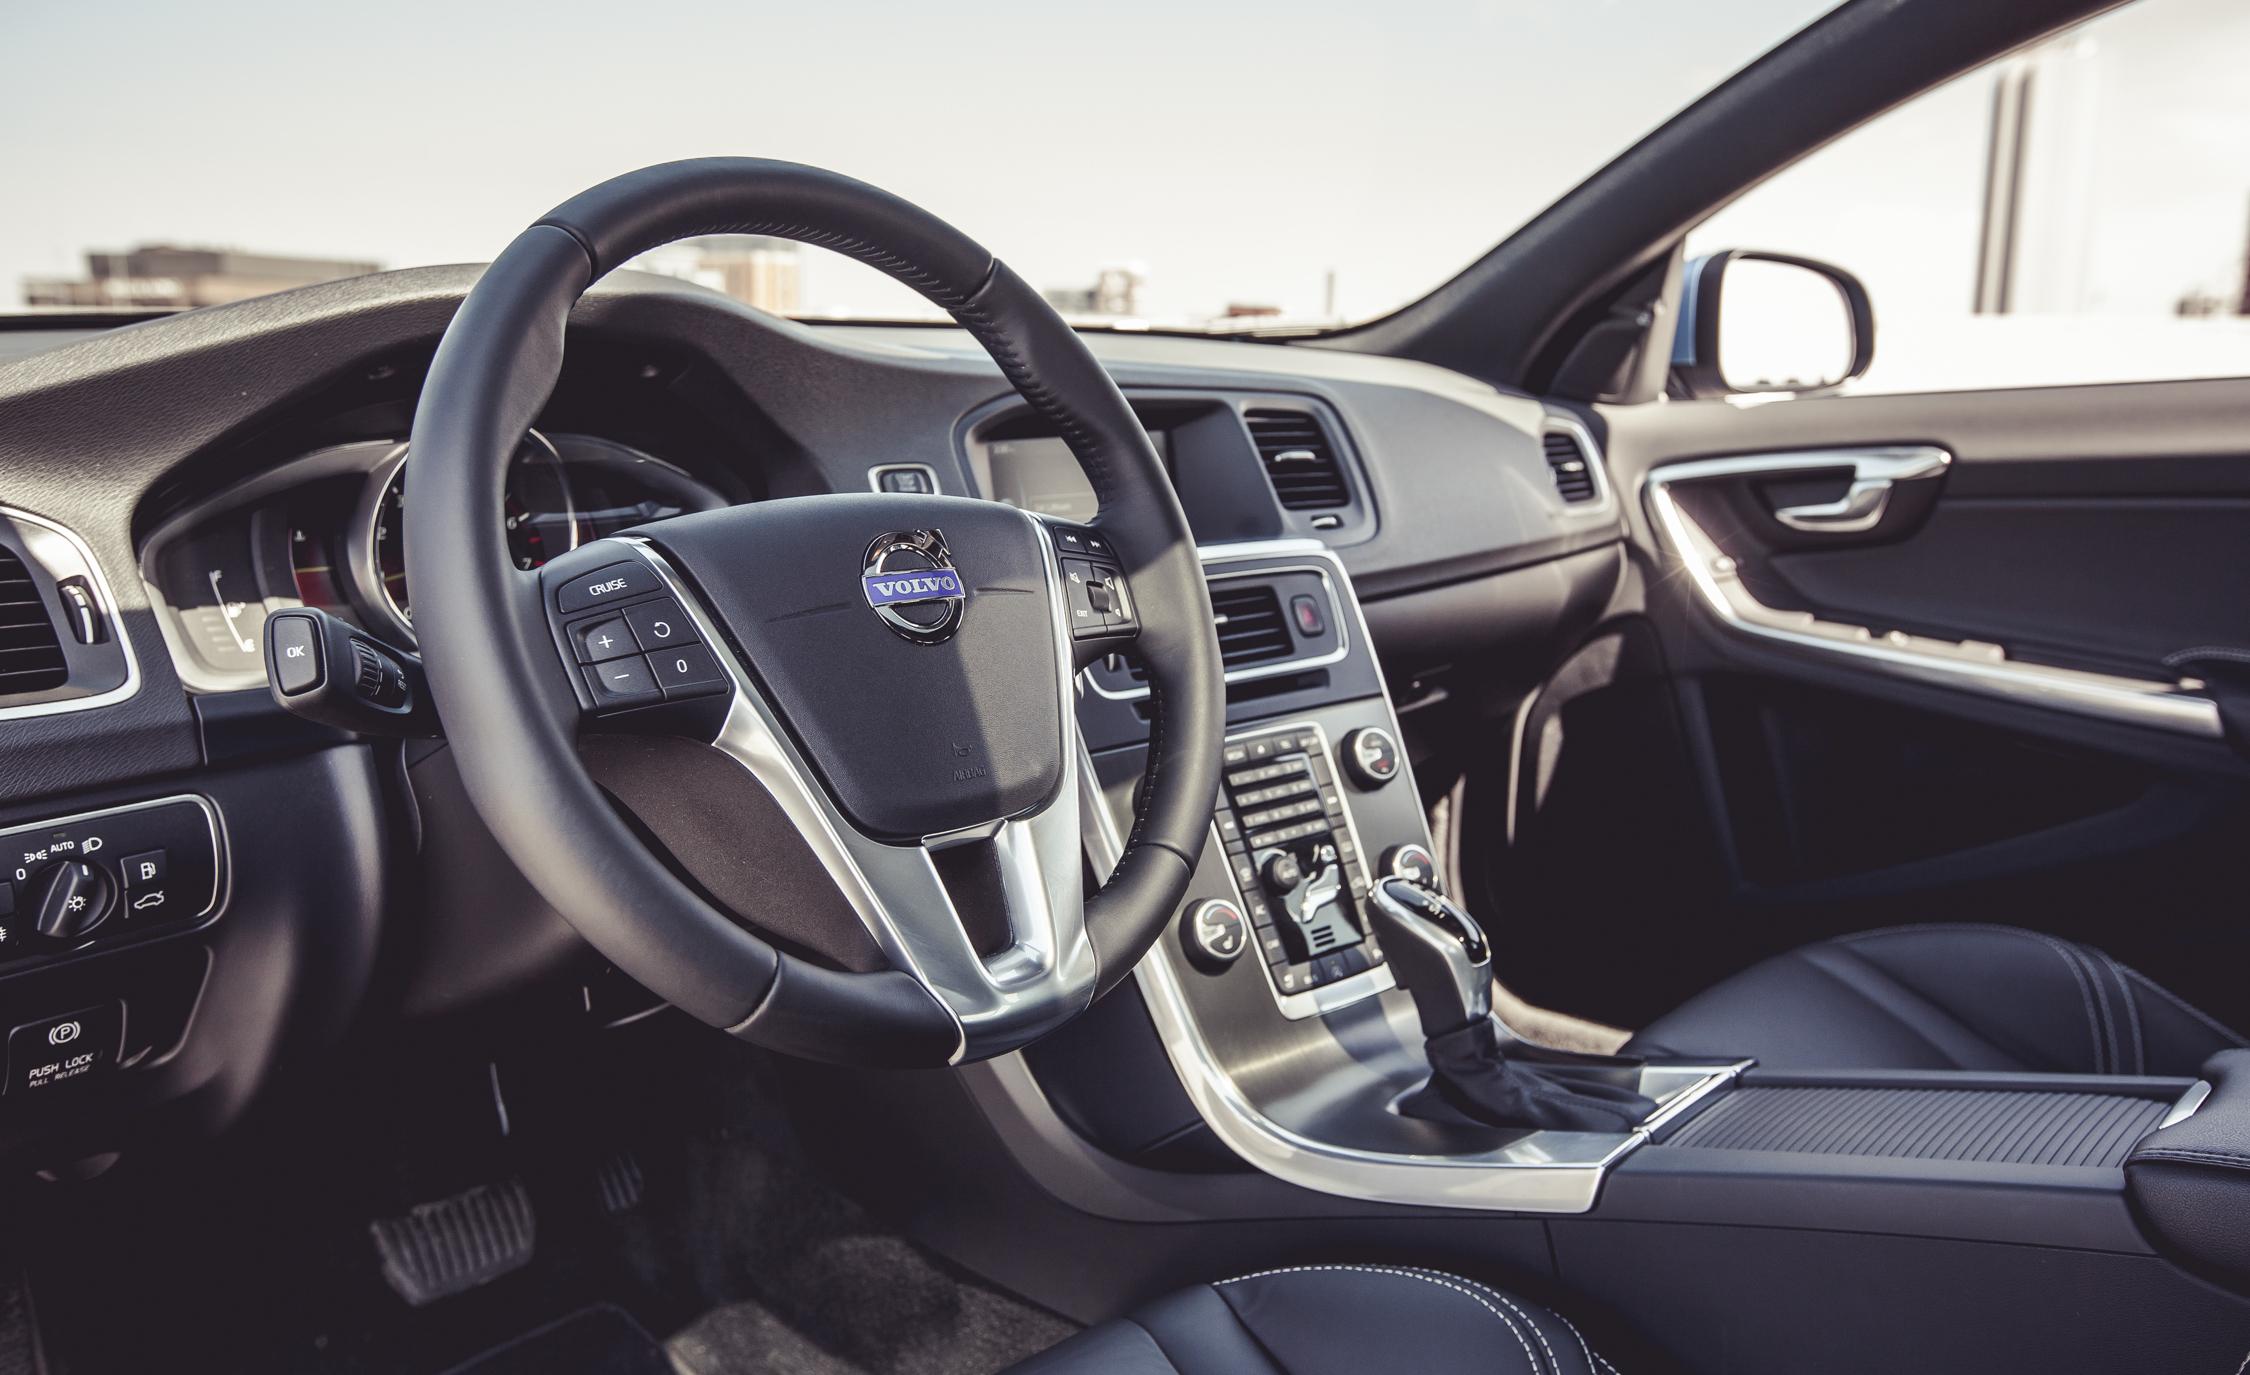 2015 Volvo V60 Interior (Photo 18 of 38)